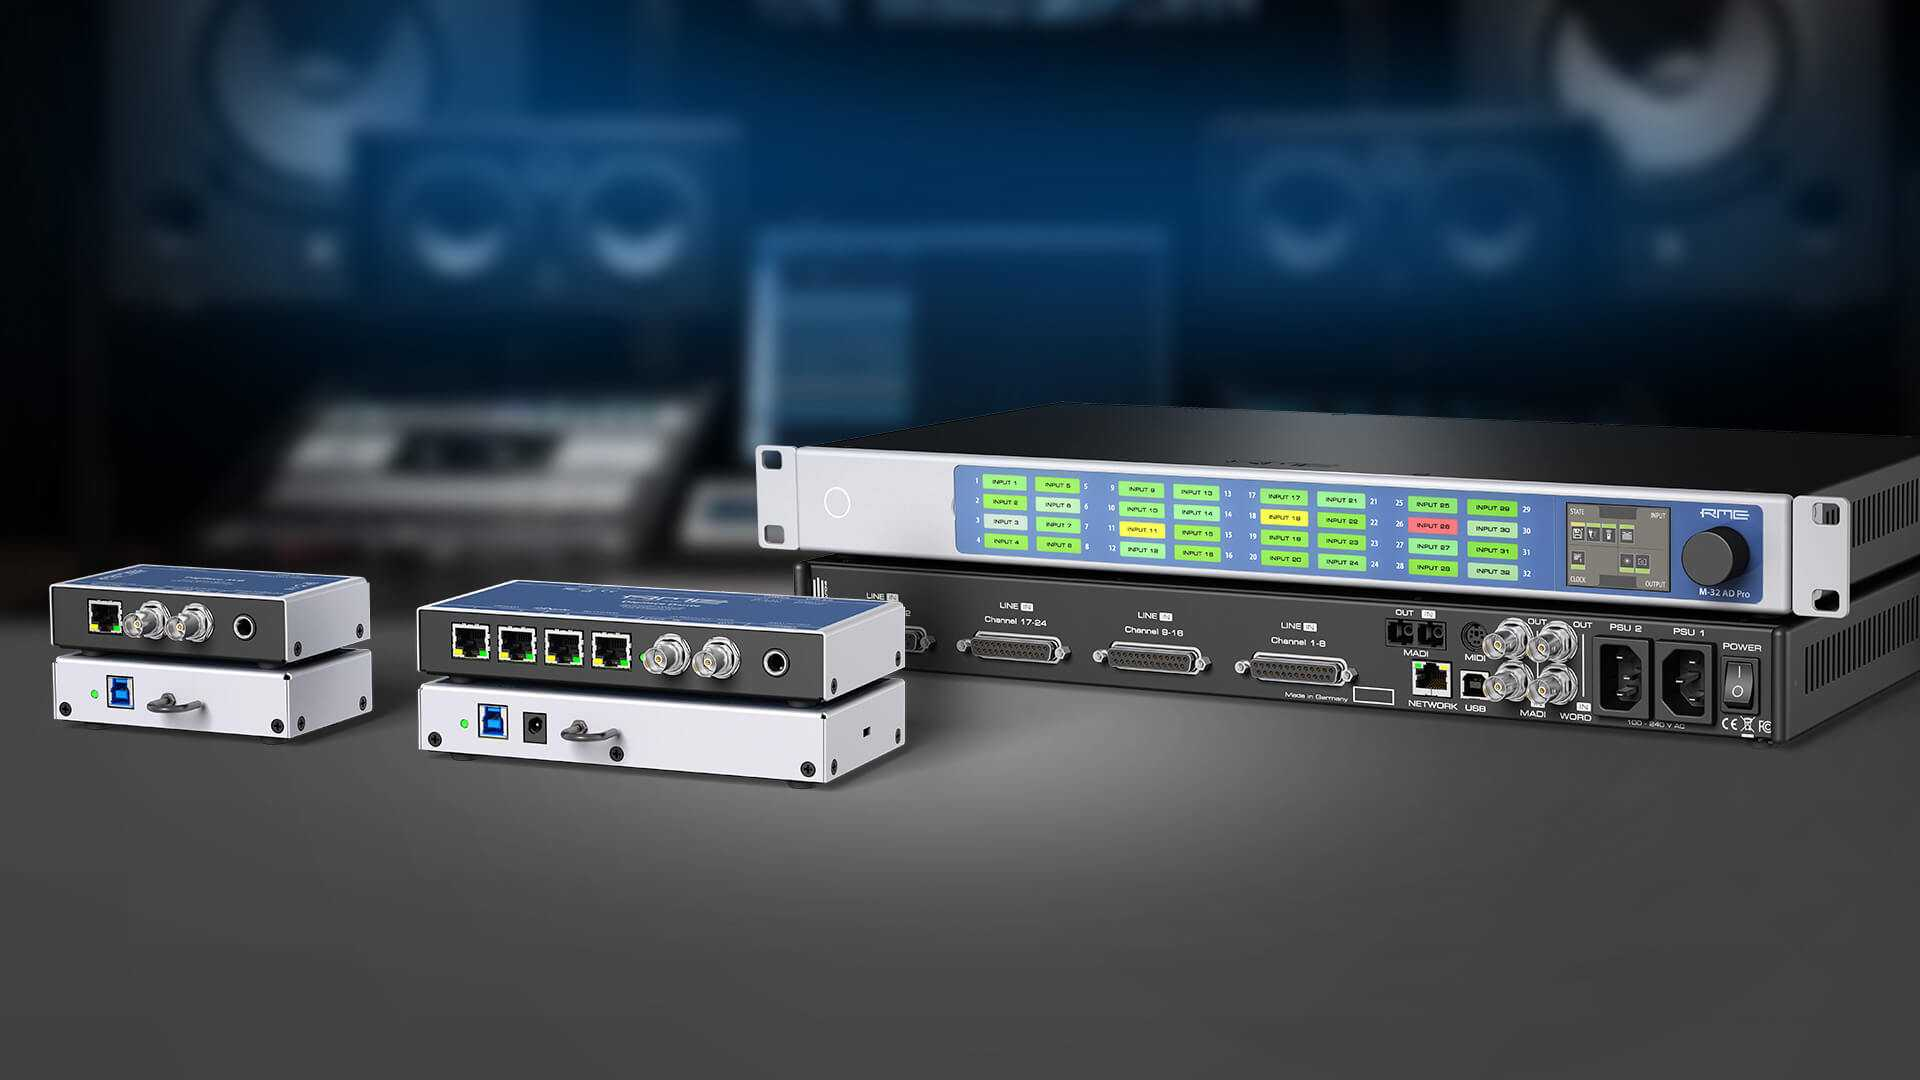 RME Network-Audio